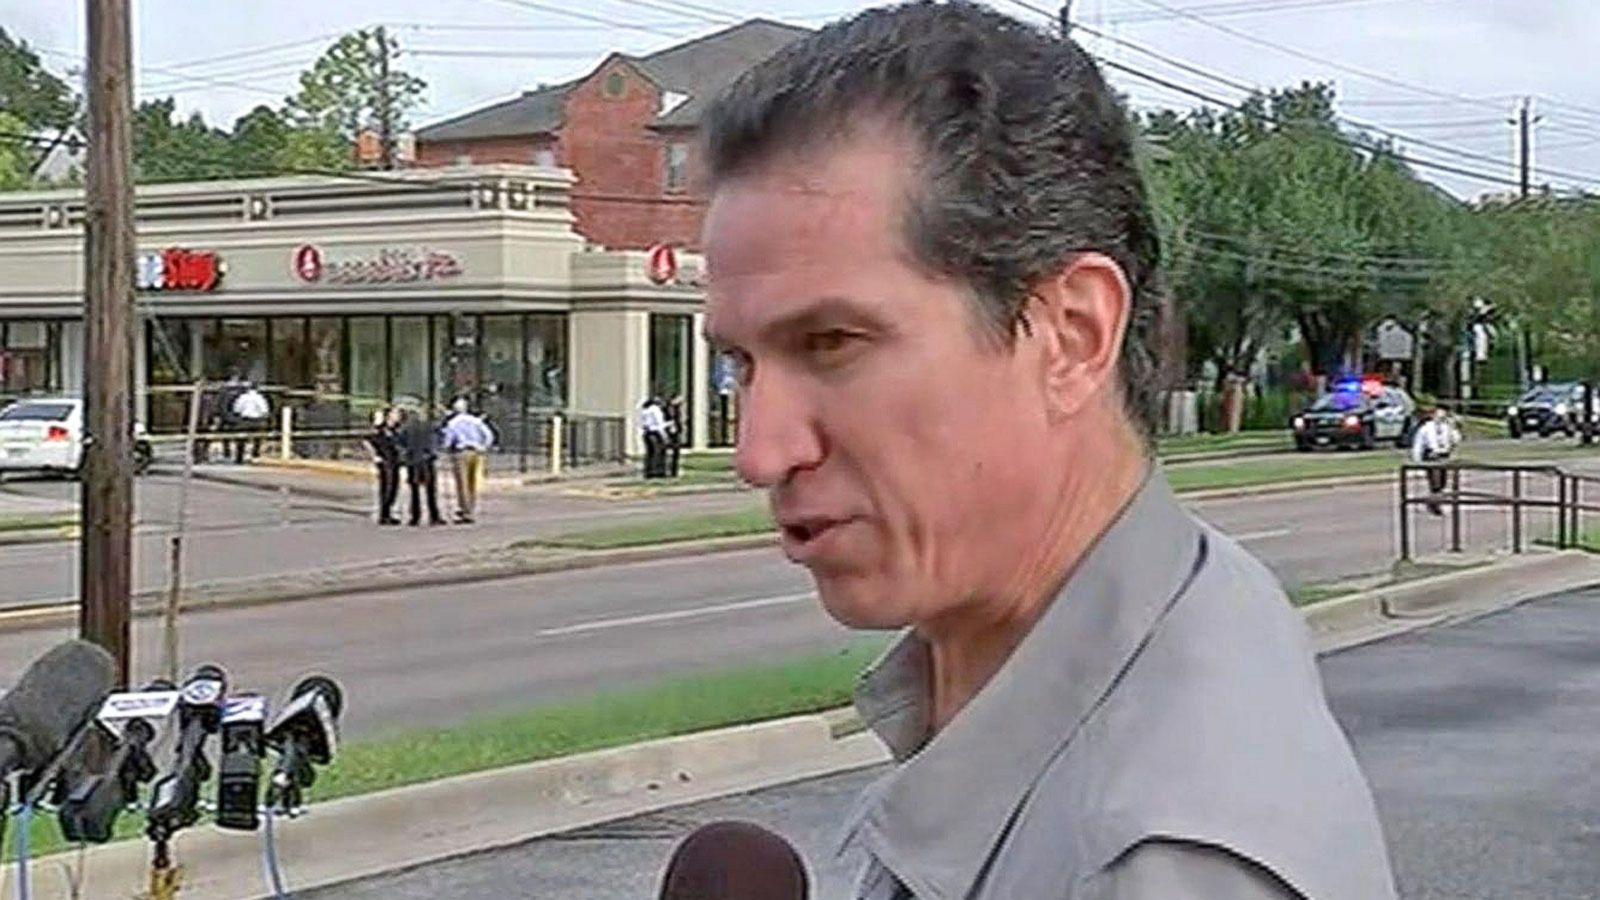 VIDEO: Houston Witnesses Describe Scene of Mall Shooting